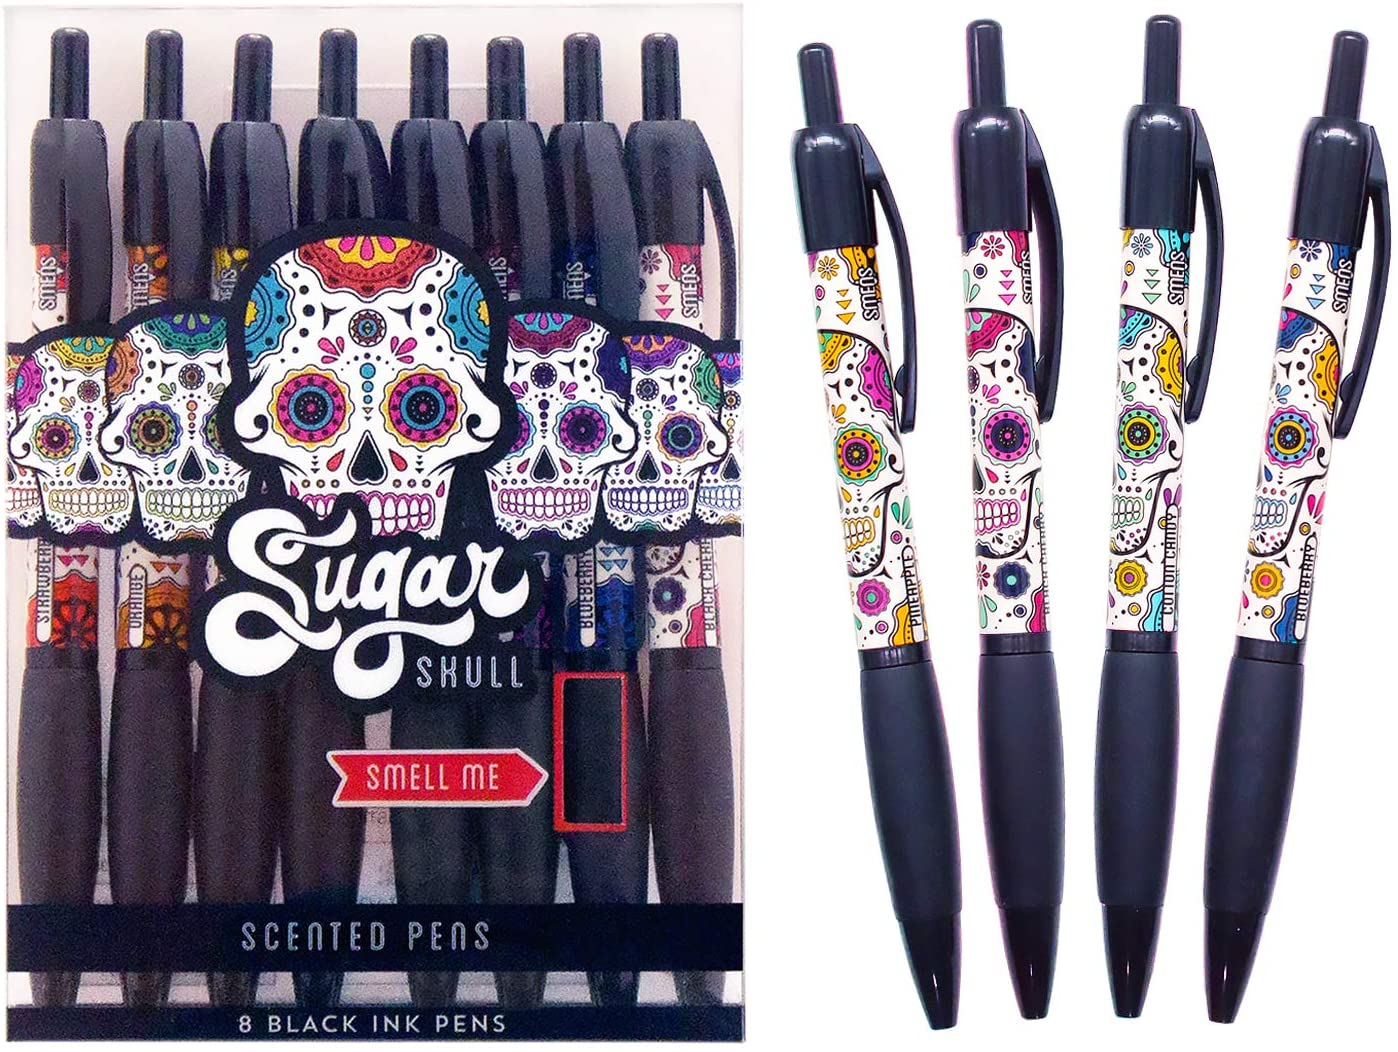 Scentco Sugar Skull Smens - Scented Pens, Black Gel Ink, Medium Point, Black Cherry & Strawberry - 8 Count